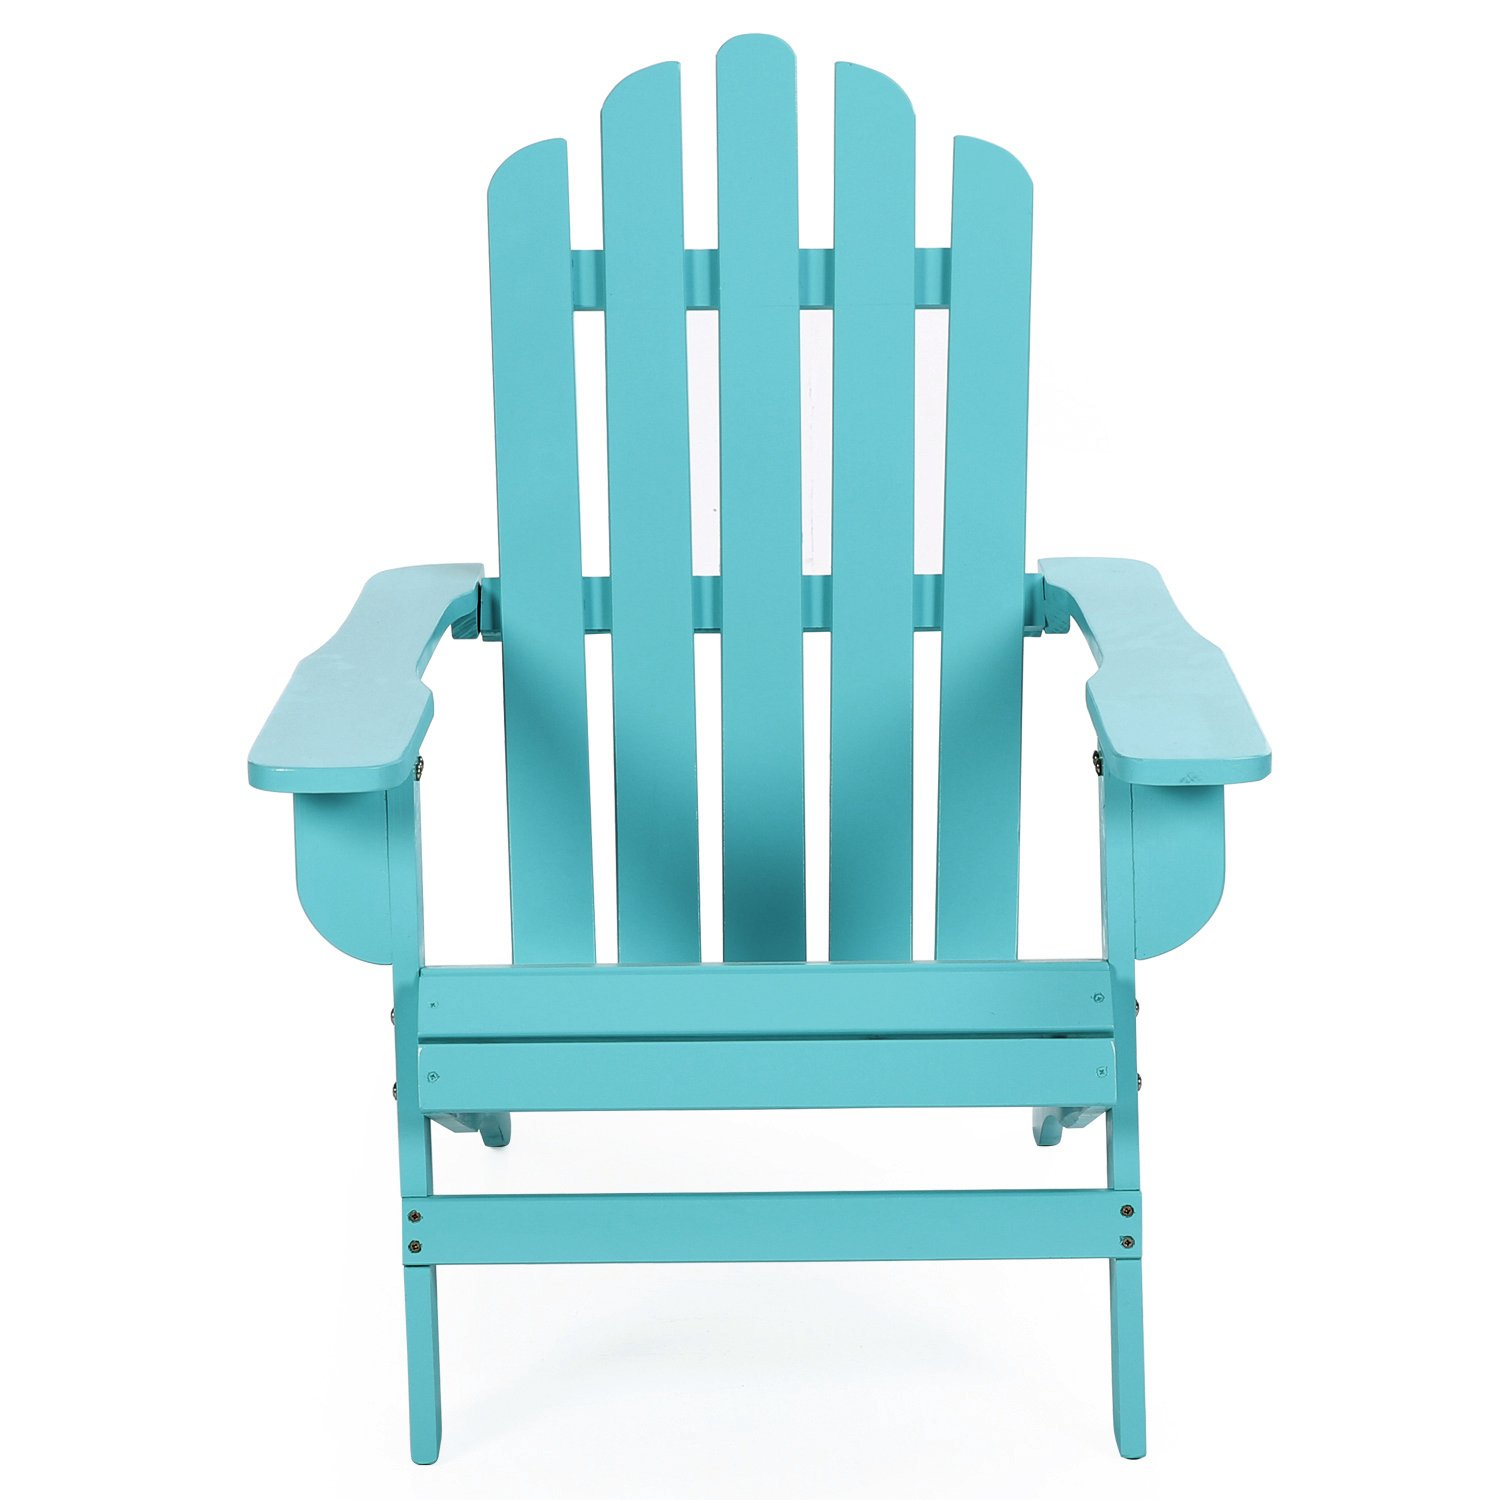 Azbro Outdoor Wooden Fashion Adirondack chair/Muskoka Chairs Patio Deck Garden Furniture,Turquoise by Azbro (Image #2)